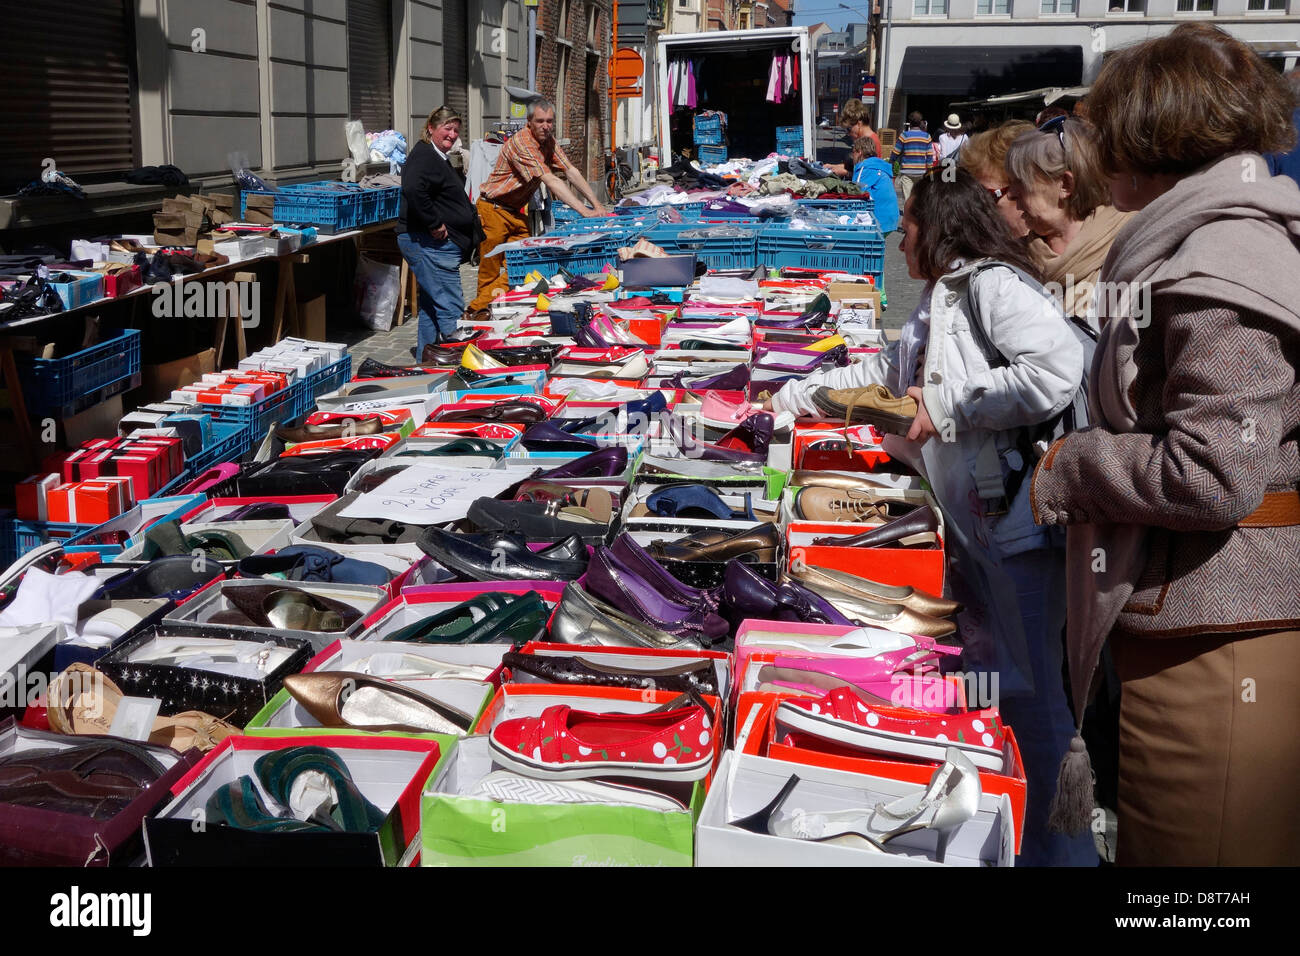 Women buying second hand shoes at flea market in town Stock Photo